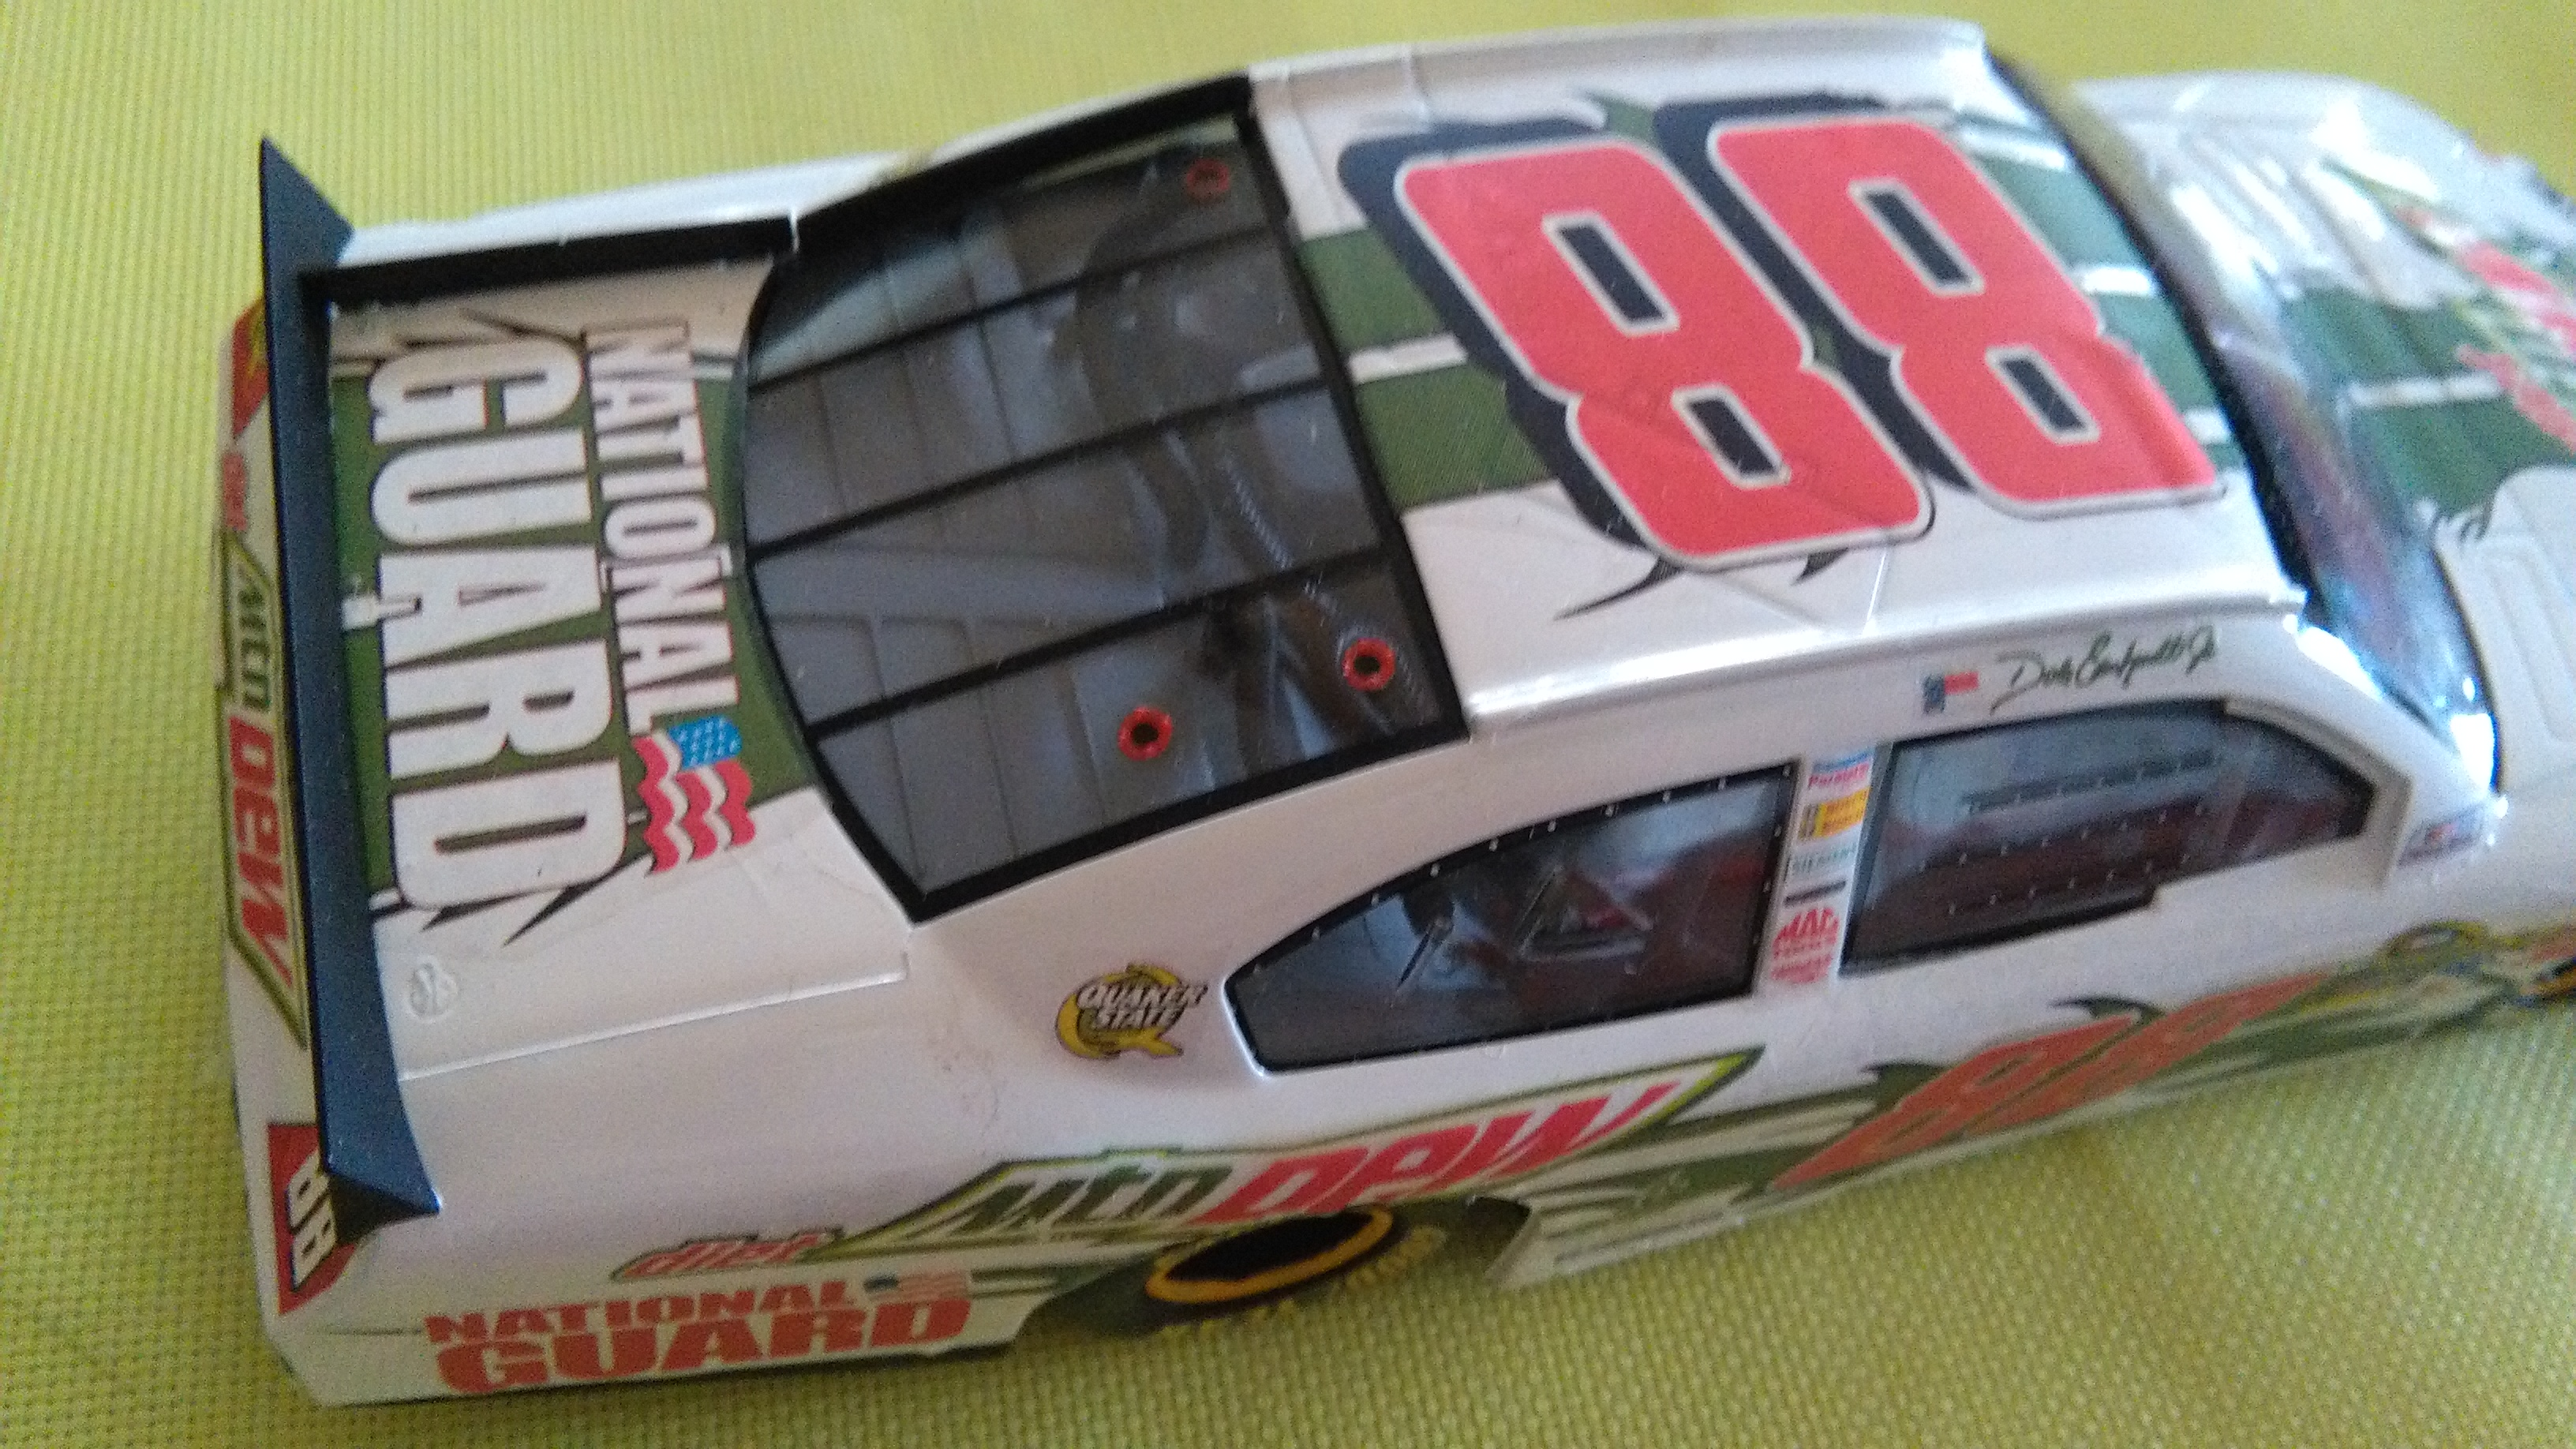 Chevy Impala 2010 #88 Earnhardt jr Mountain dew diet 219510IMG20160320150435